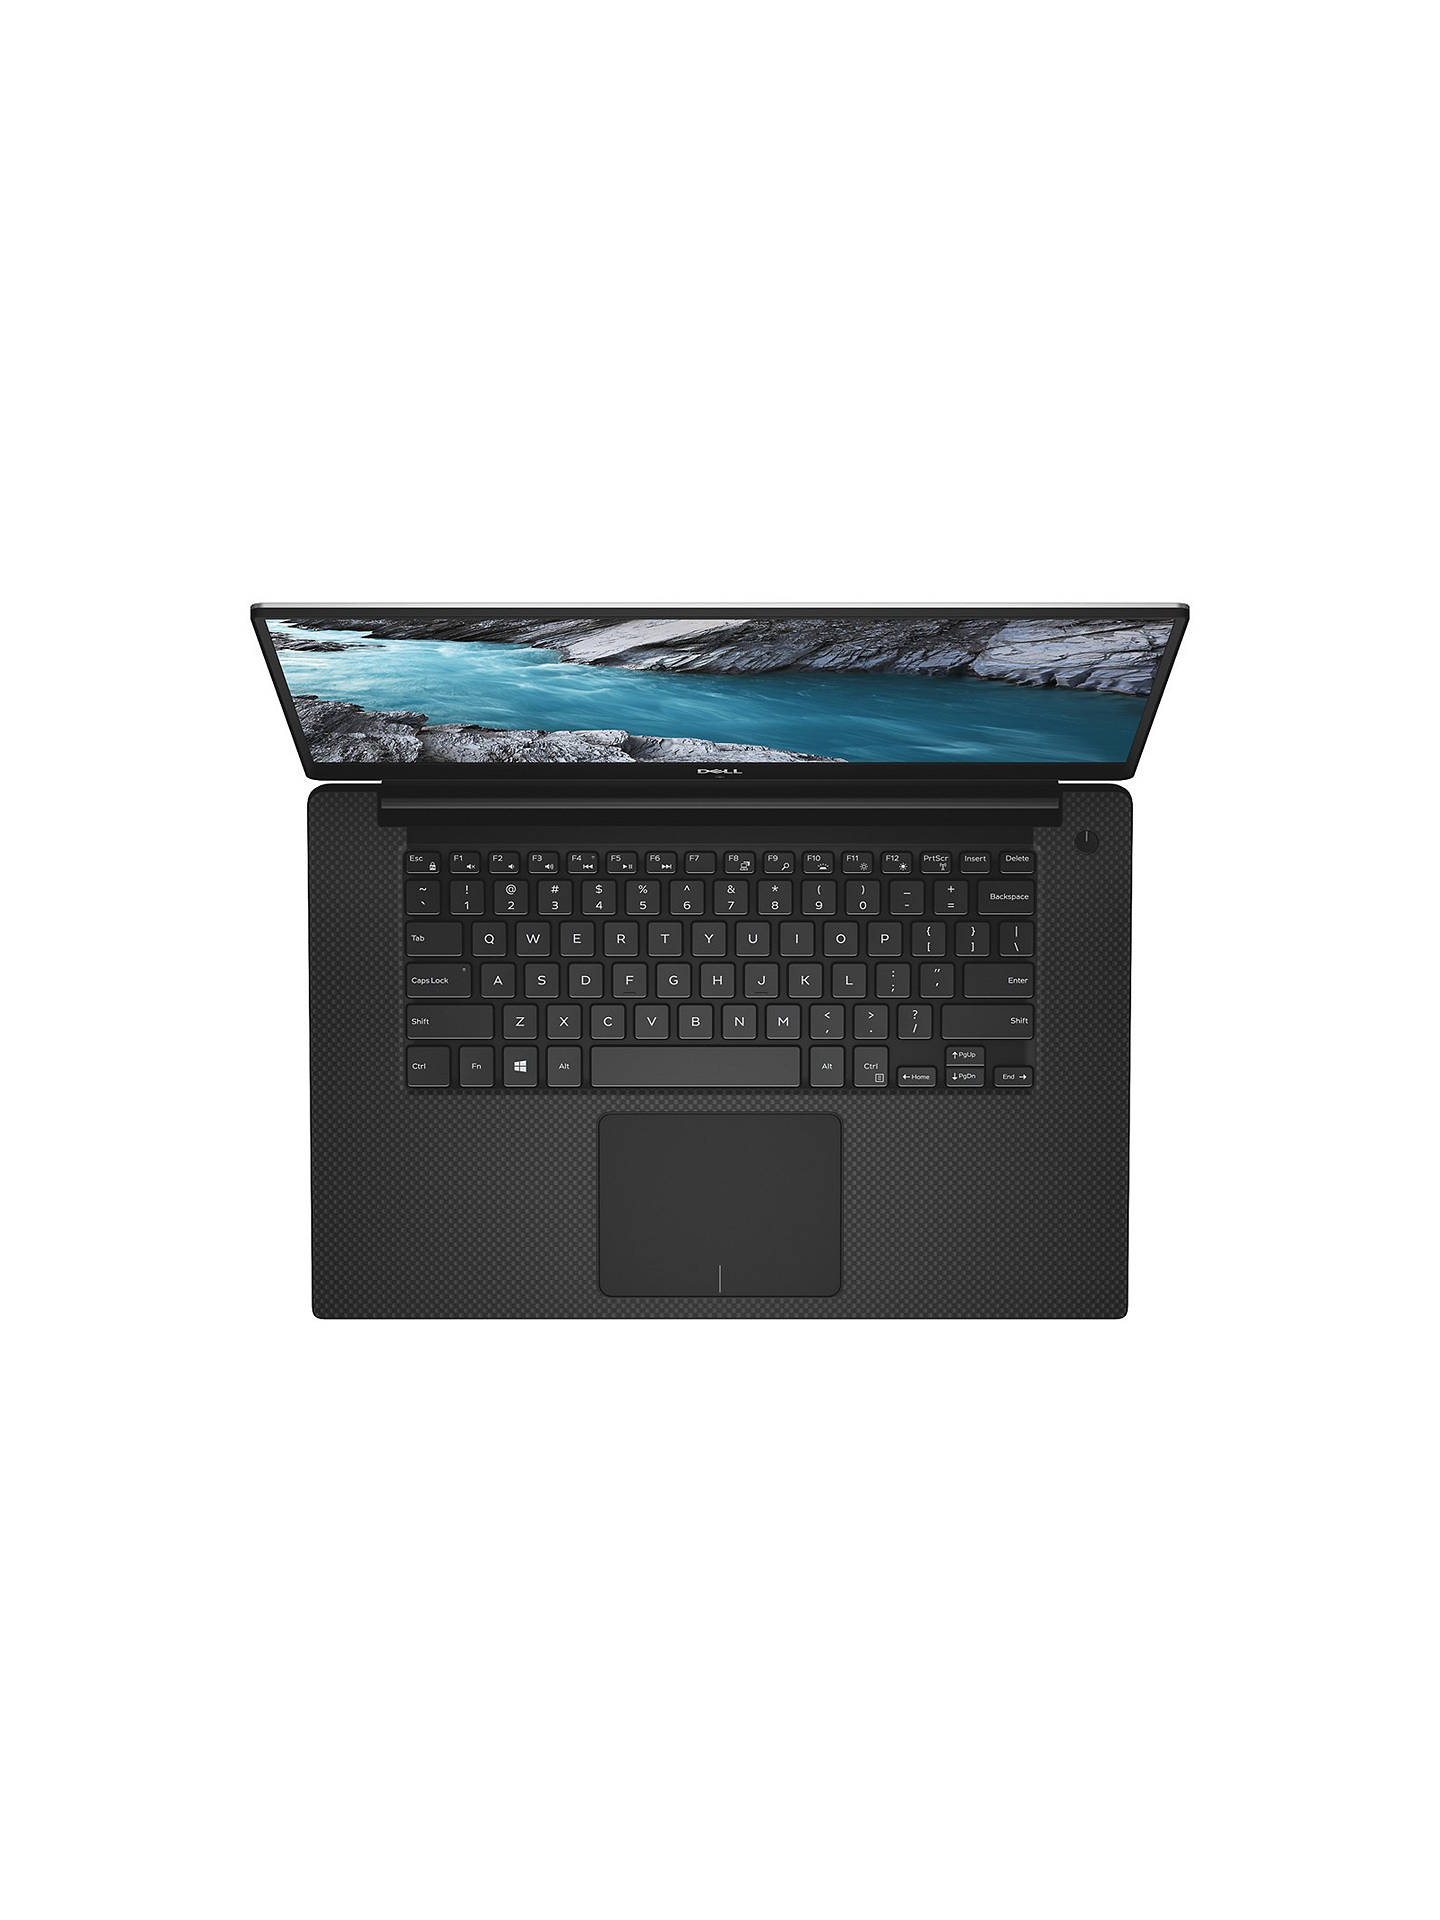 Dell XPS 15-9570 Laptop, Intel Core i7, 16GB RAM, NVIDIA GeForce GTX  1050Ti, 512GB SSD, 15 6